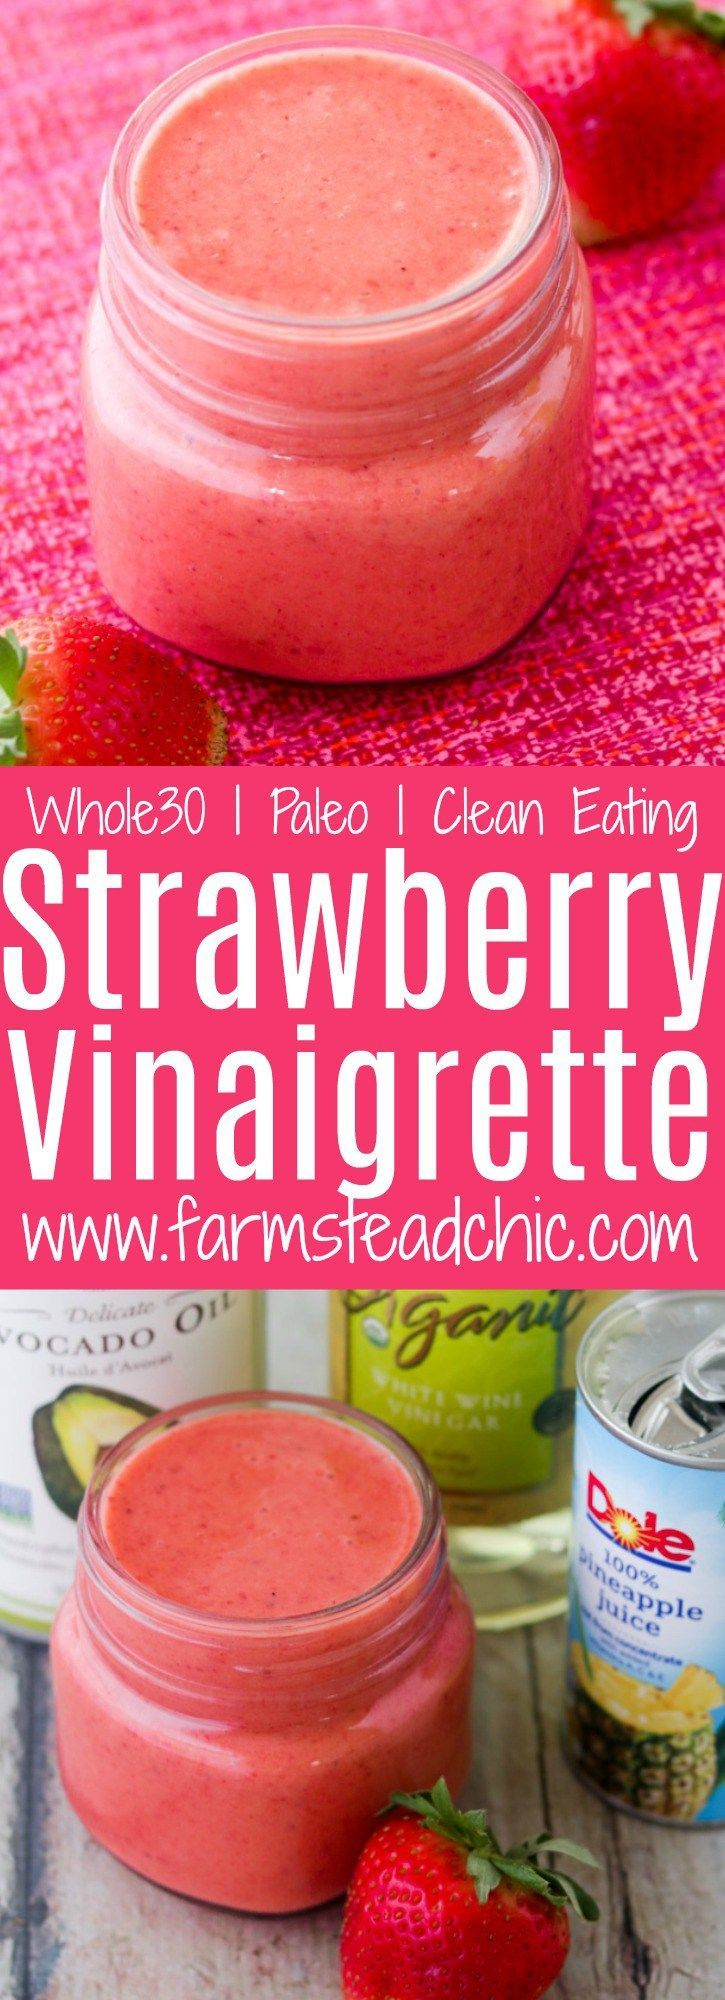 Paleo And Whole30 Strawberry Vinaigrette Dressing Vegetarian Vegan Farmstead Chic Recipe Strawberry Vinaigrette Vinaigrette Dressing Recipe Strawberry Vinaigrette Dressing Recipe